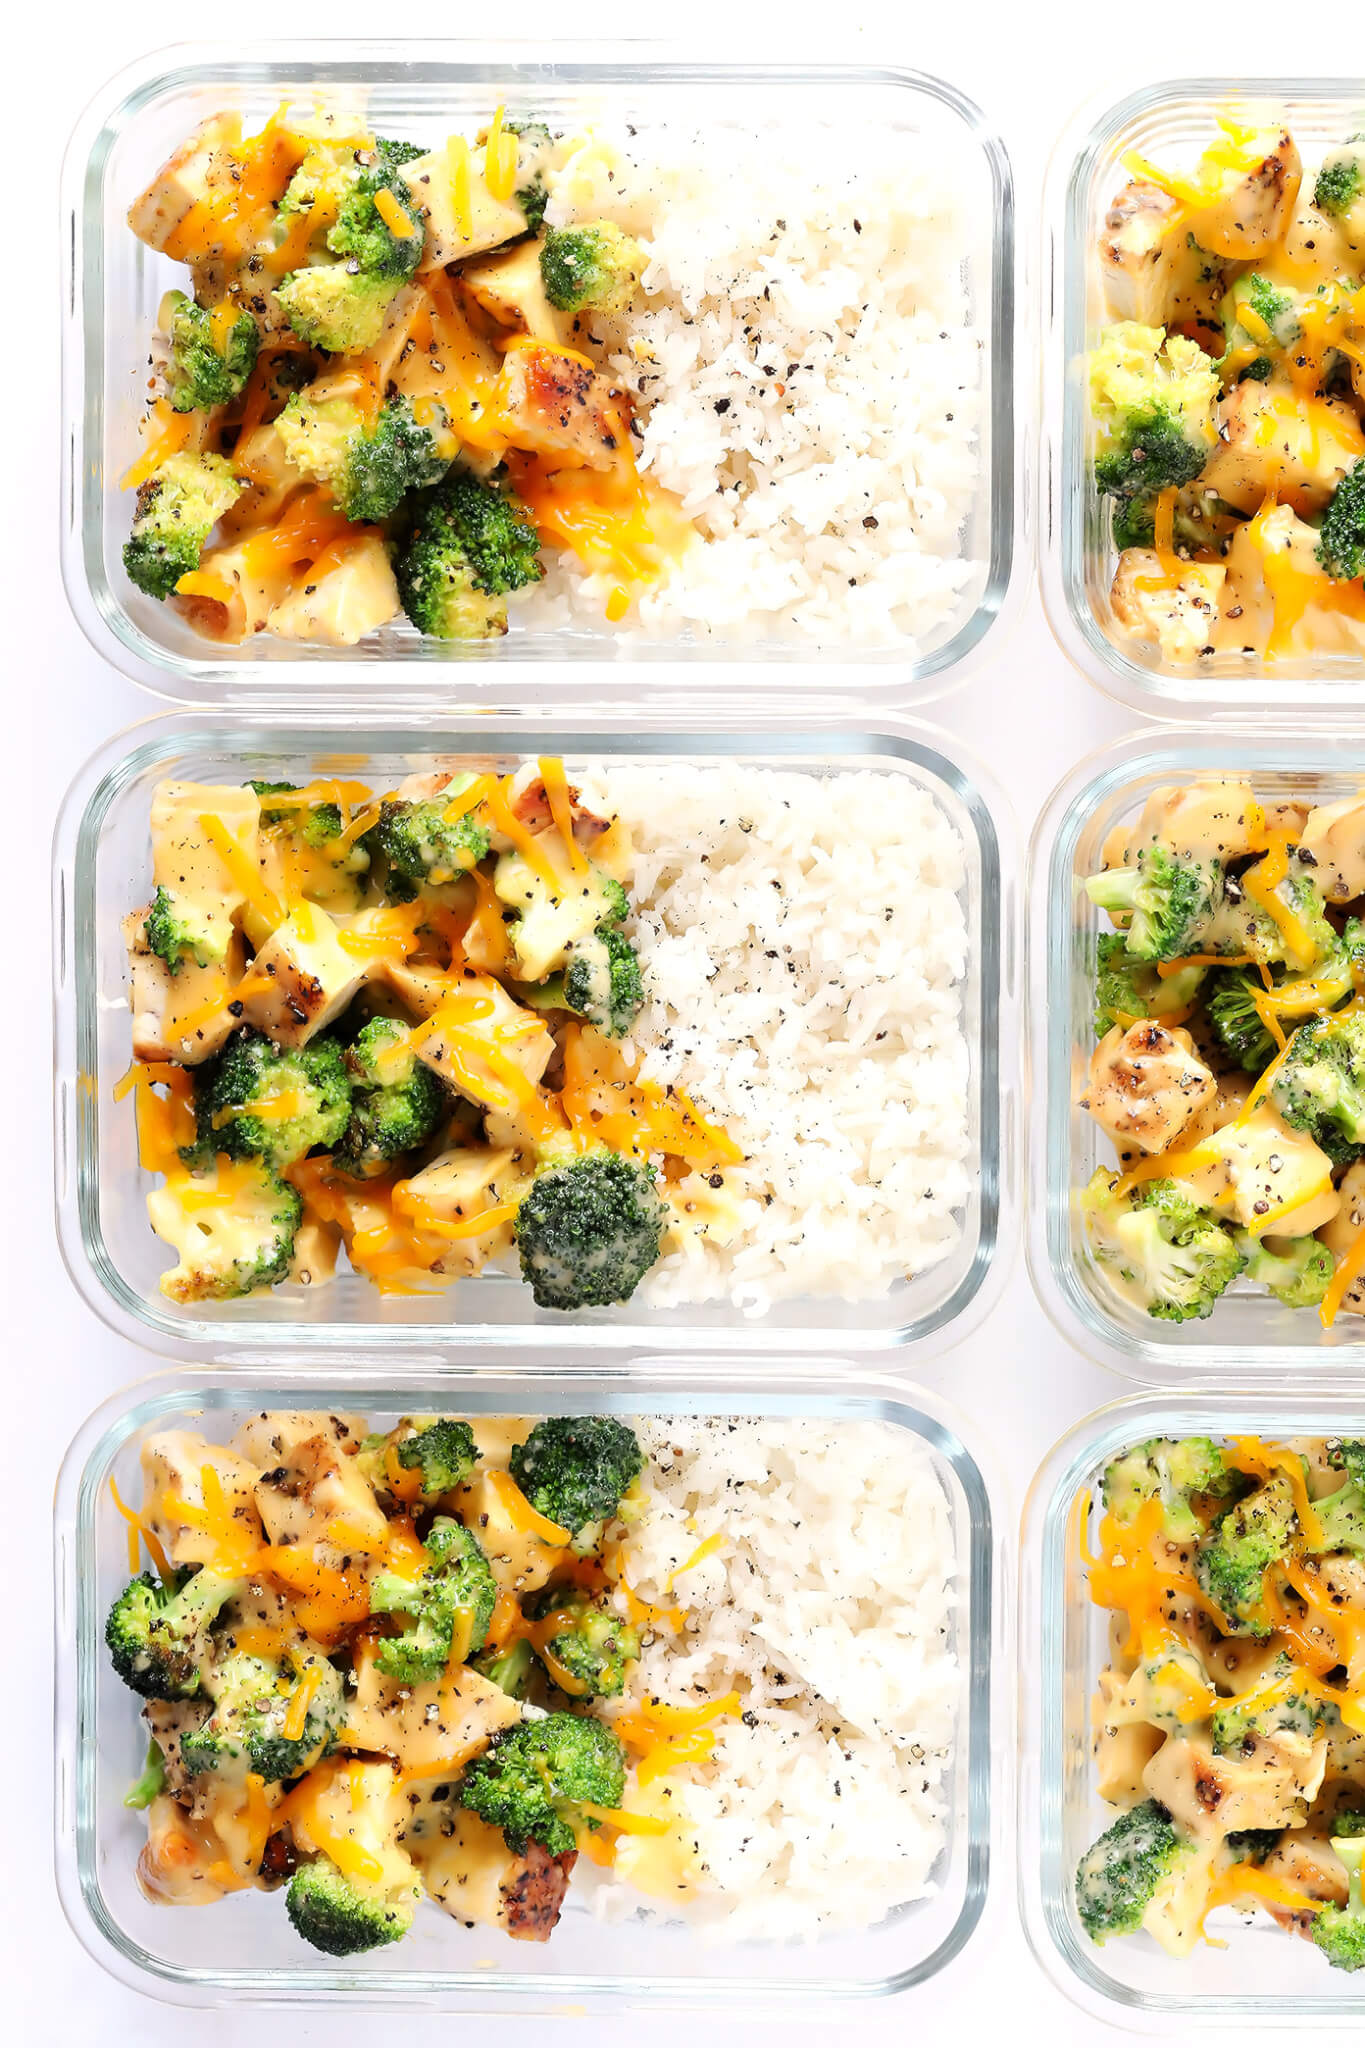 Cheesy Broccoli, Chicken and Rice Bowls (Meal Prep) | Gimme Some Oven